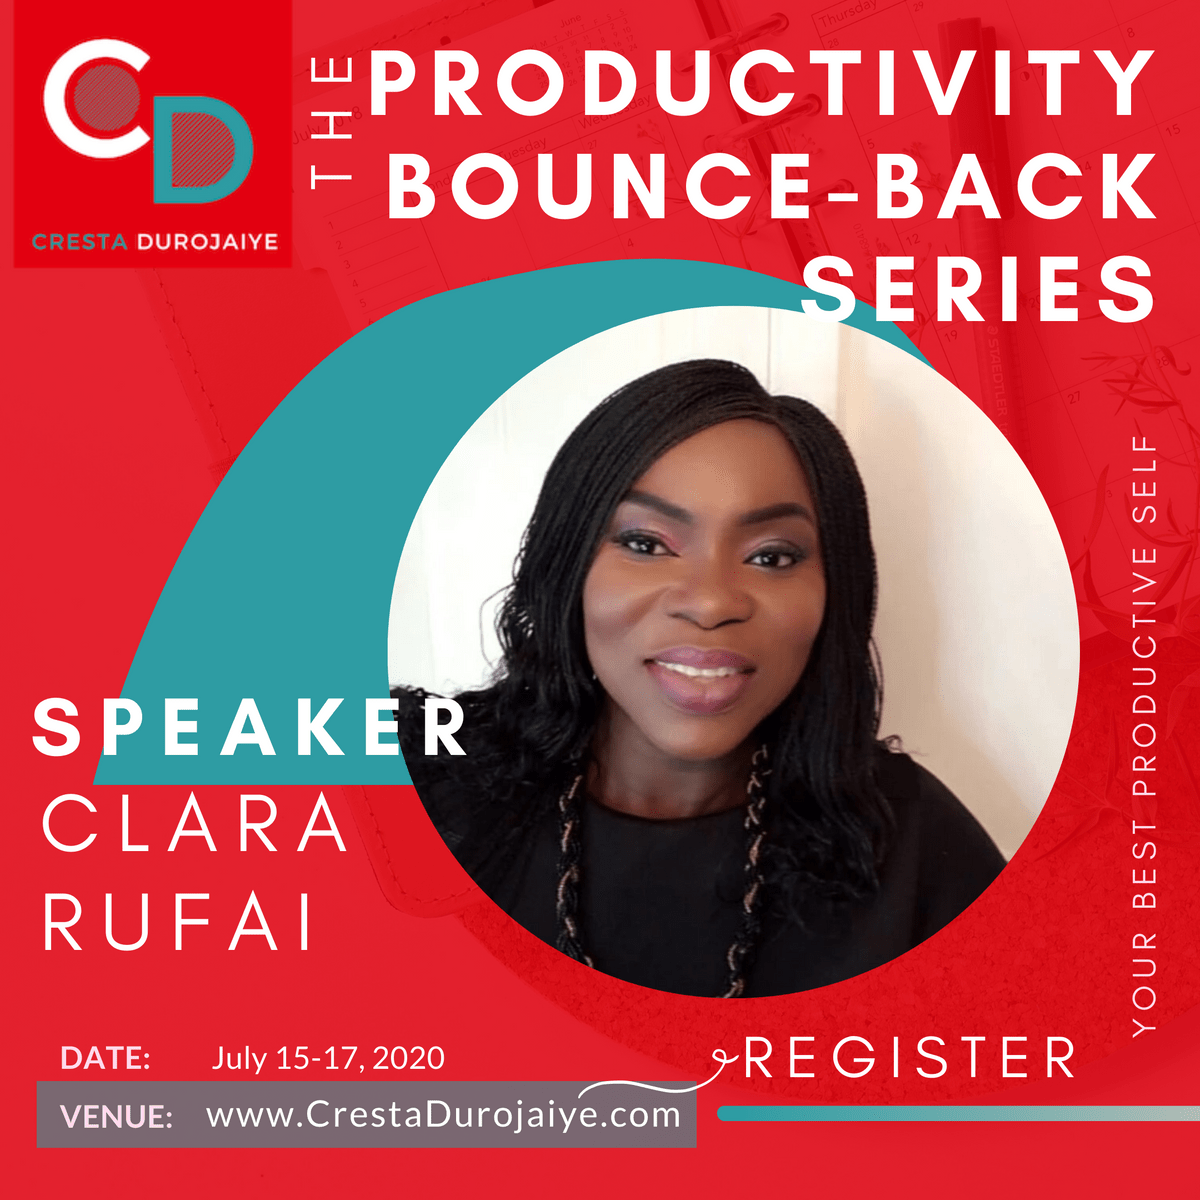 Clara Rufai is speaking at The Productivity Bounce Back Series